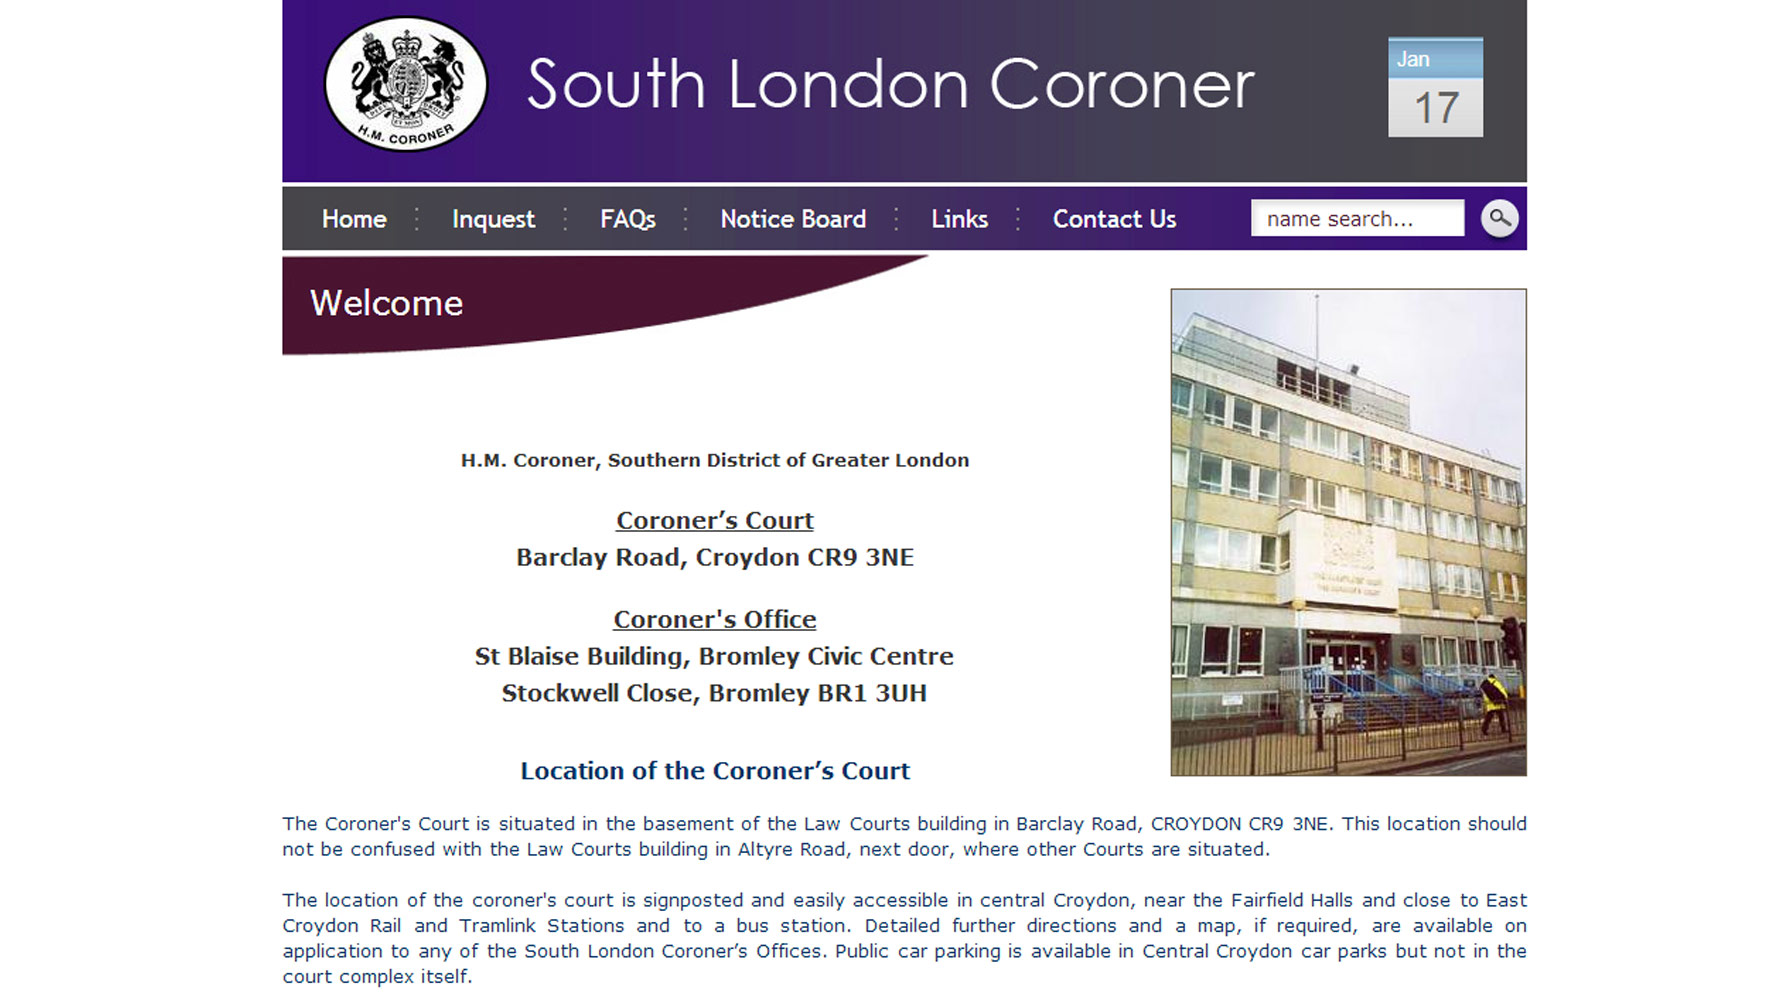 South London Coroner Homepage designed and developed by Web Adept